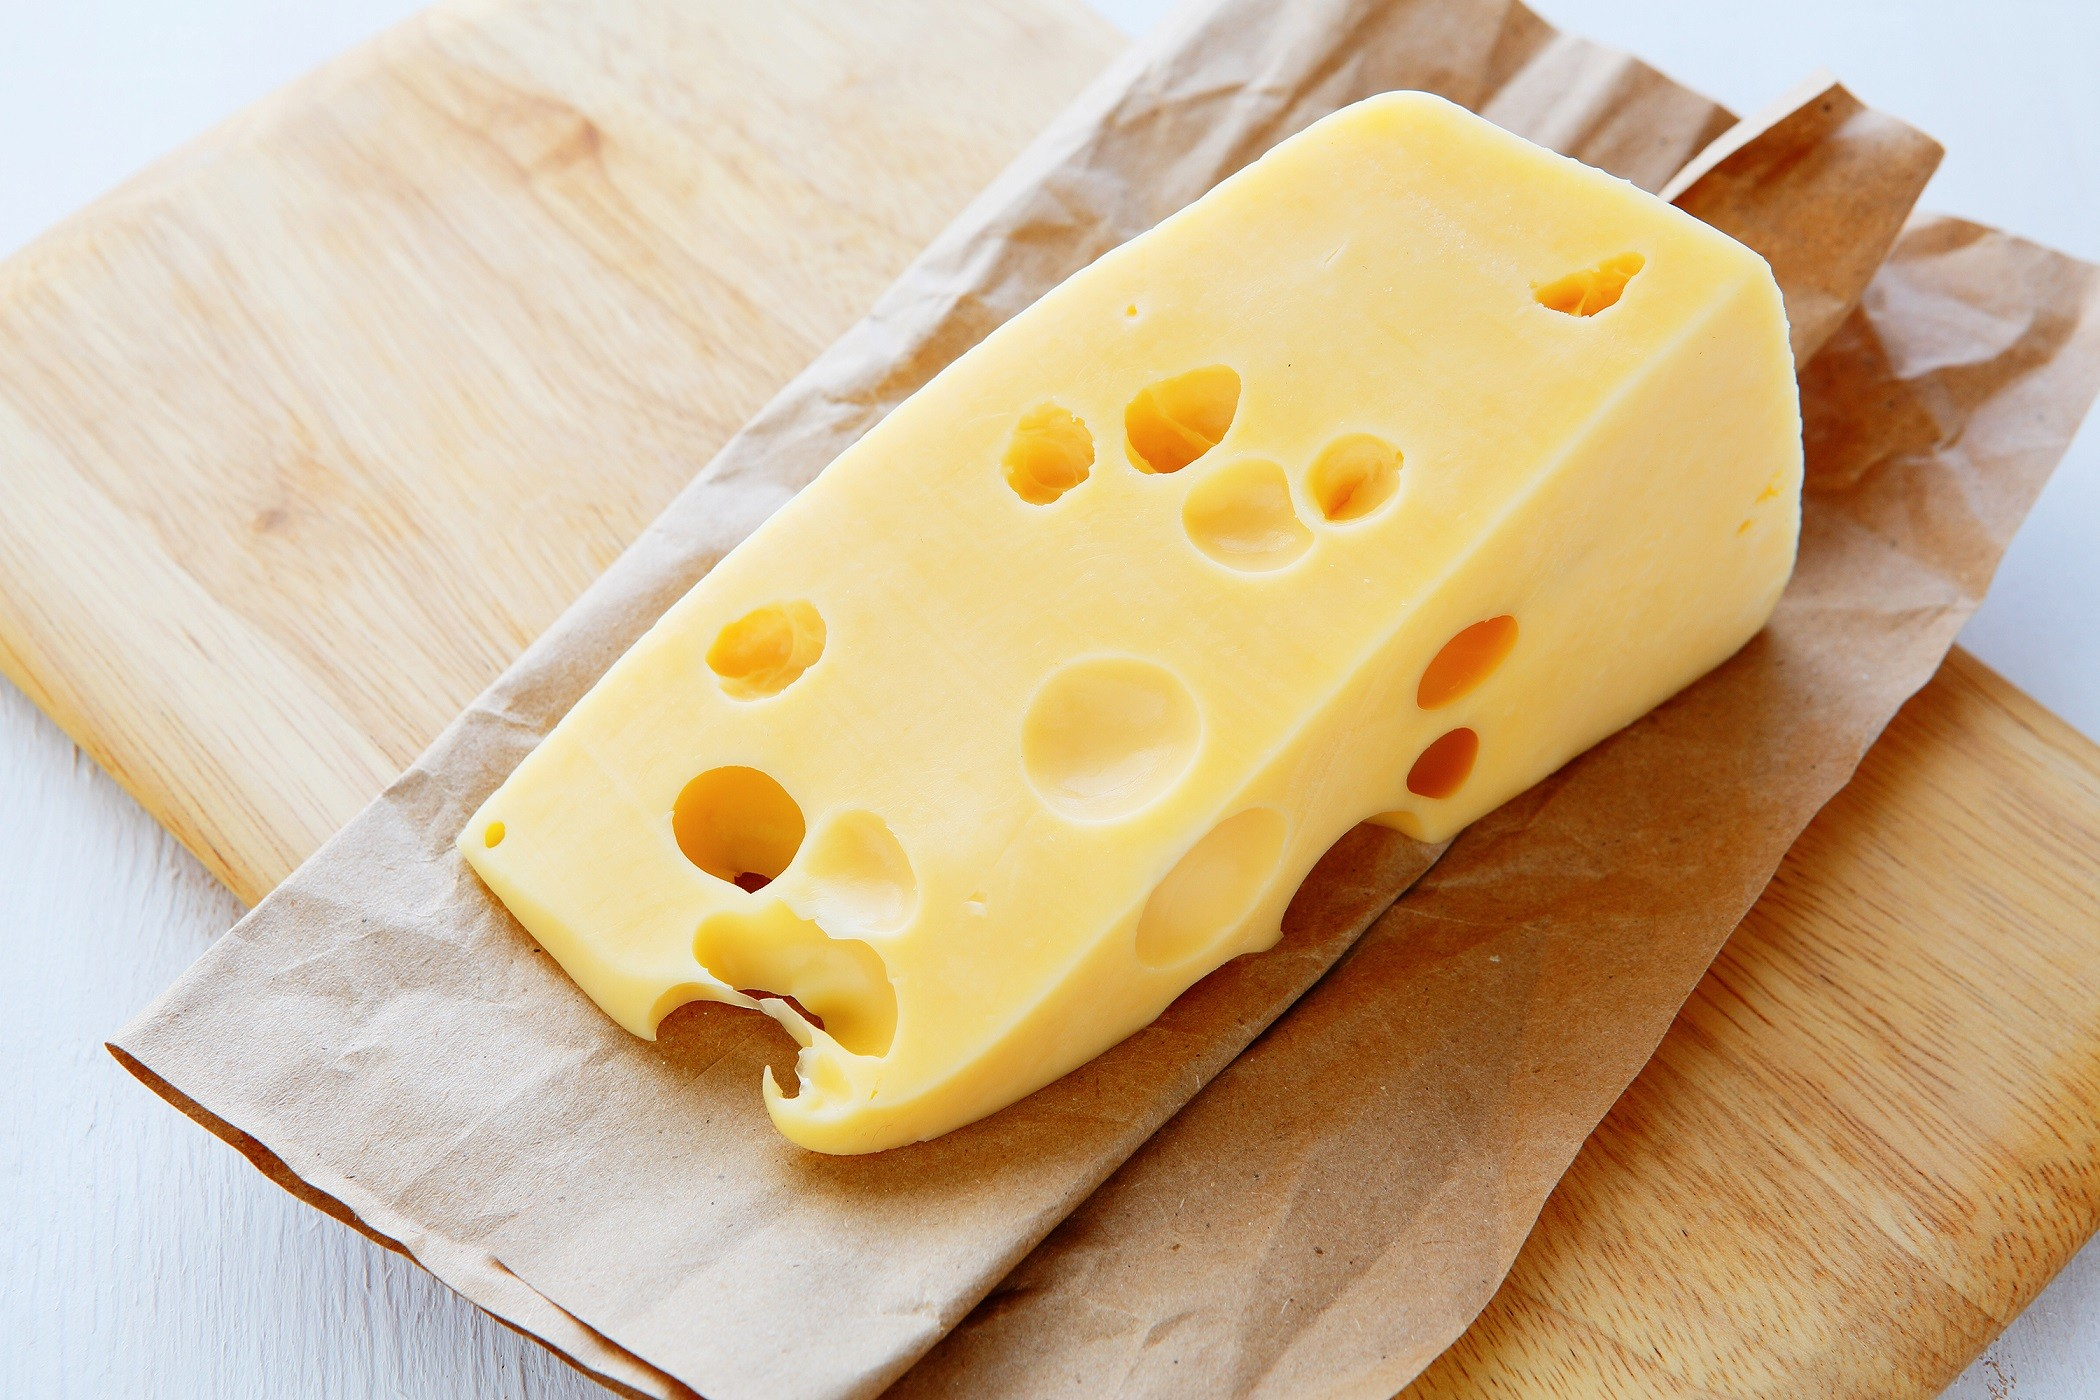 Gruyere cheese with holes